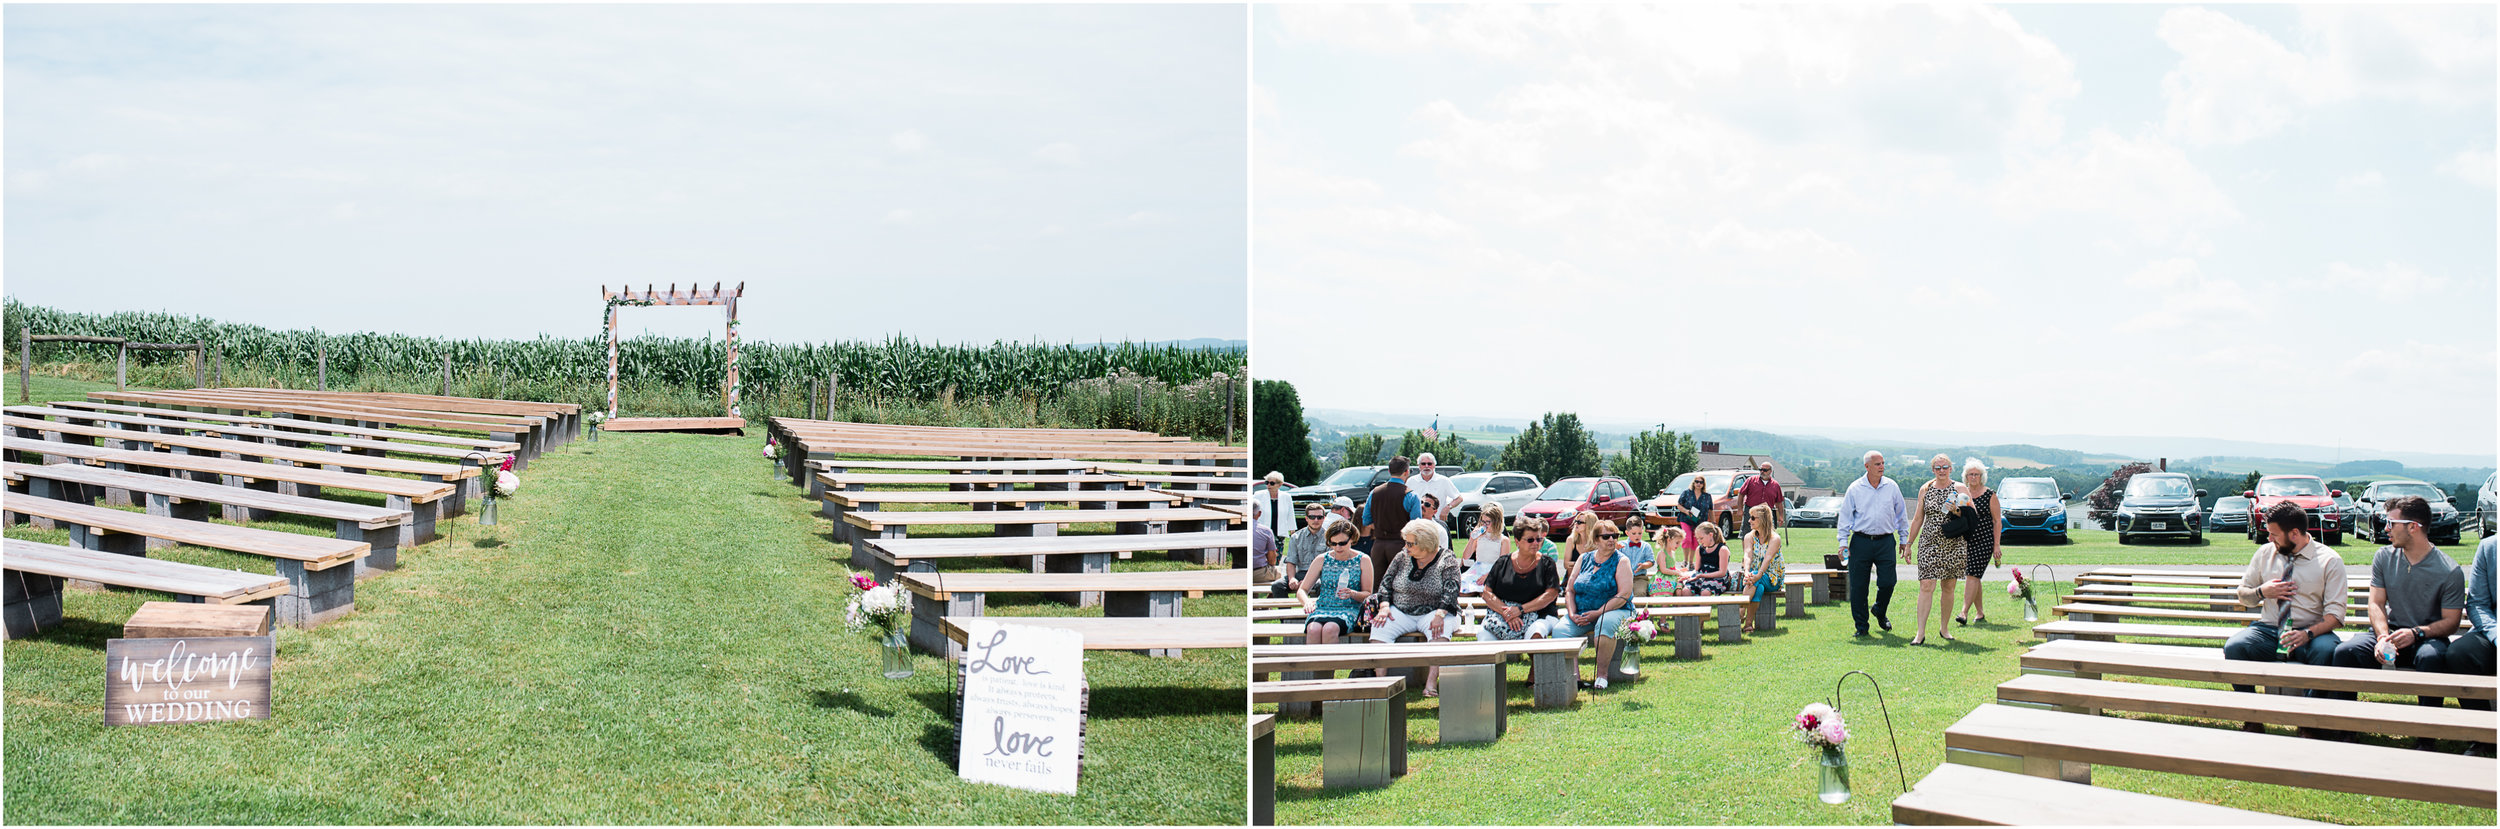 ceremony site, Pittsburgh PA barn wedding.jpg